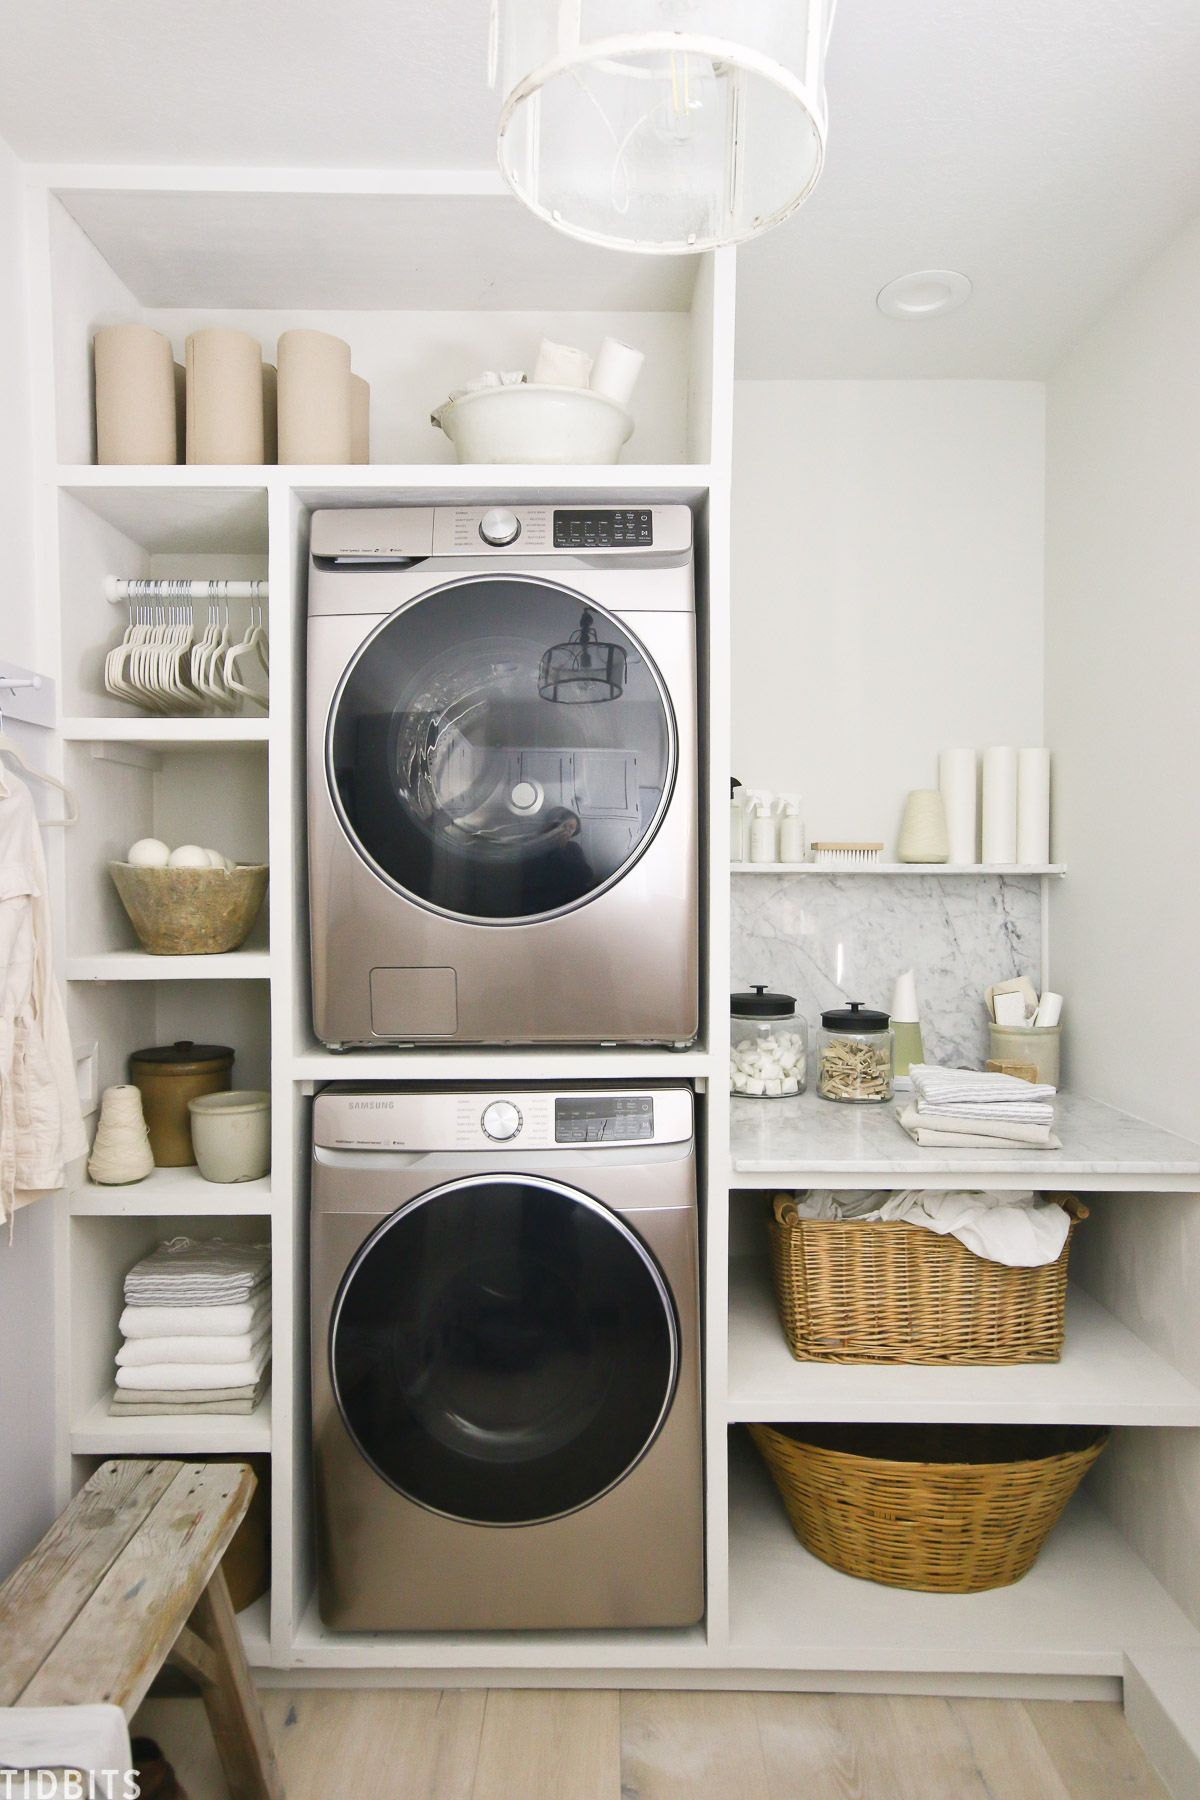 #ad Stacked Samsung washer and dryer in the color Champagne.  #europeanorganic #laundryroom #europeanstyle #homedepotpartner #homedepotxsamsung #ad #camitidbits